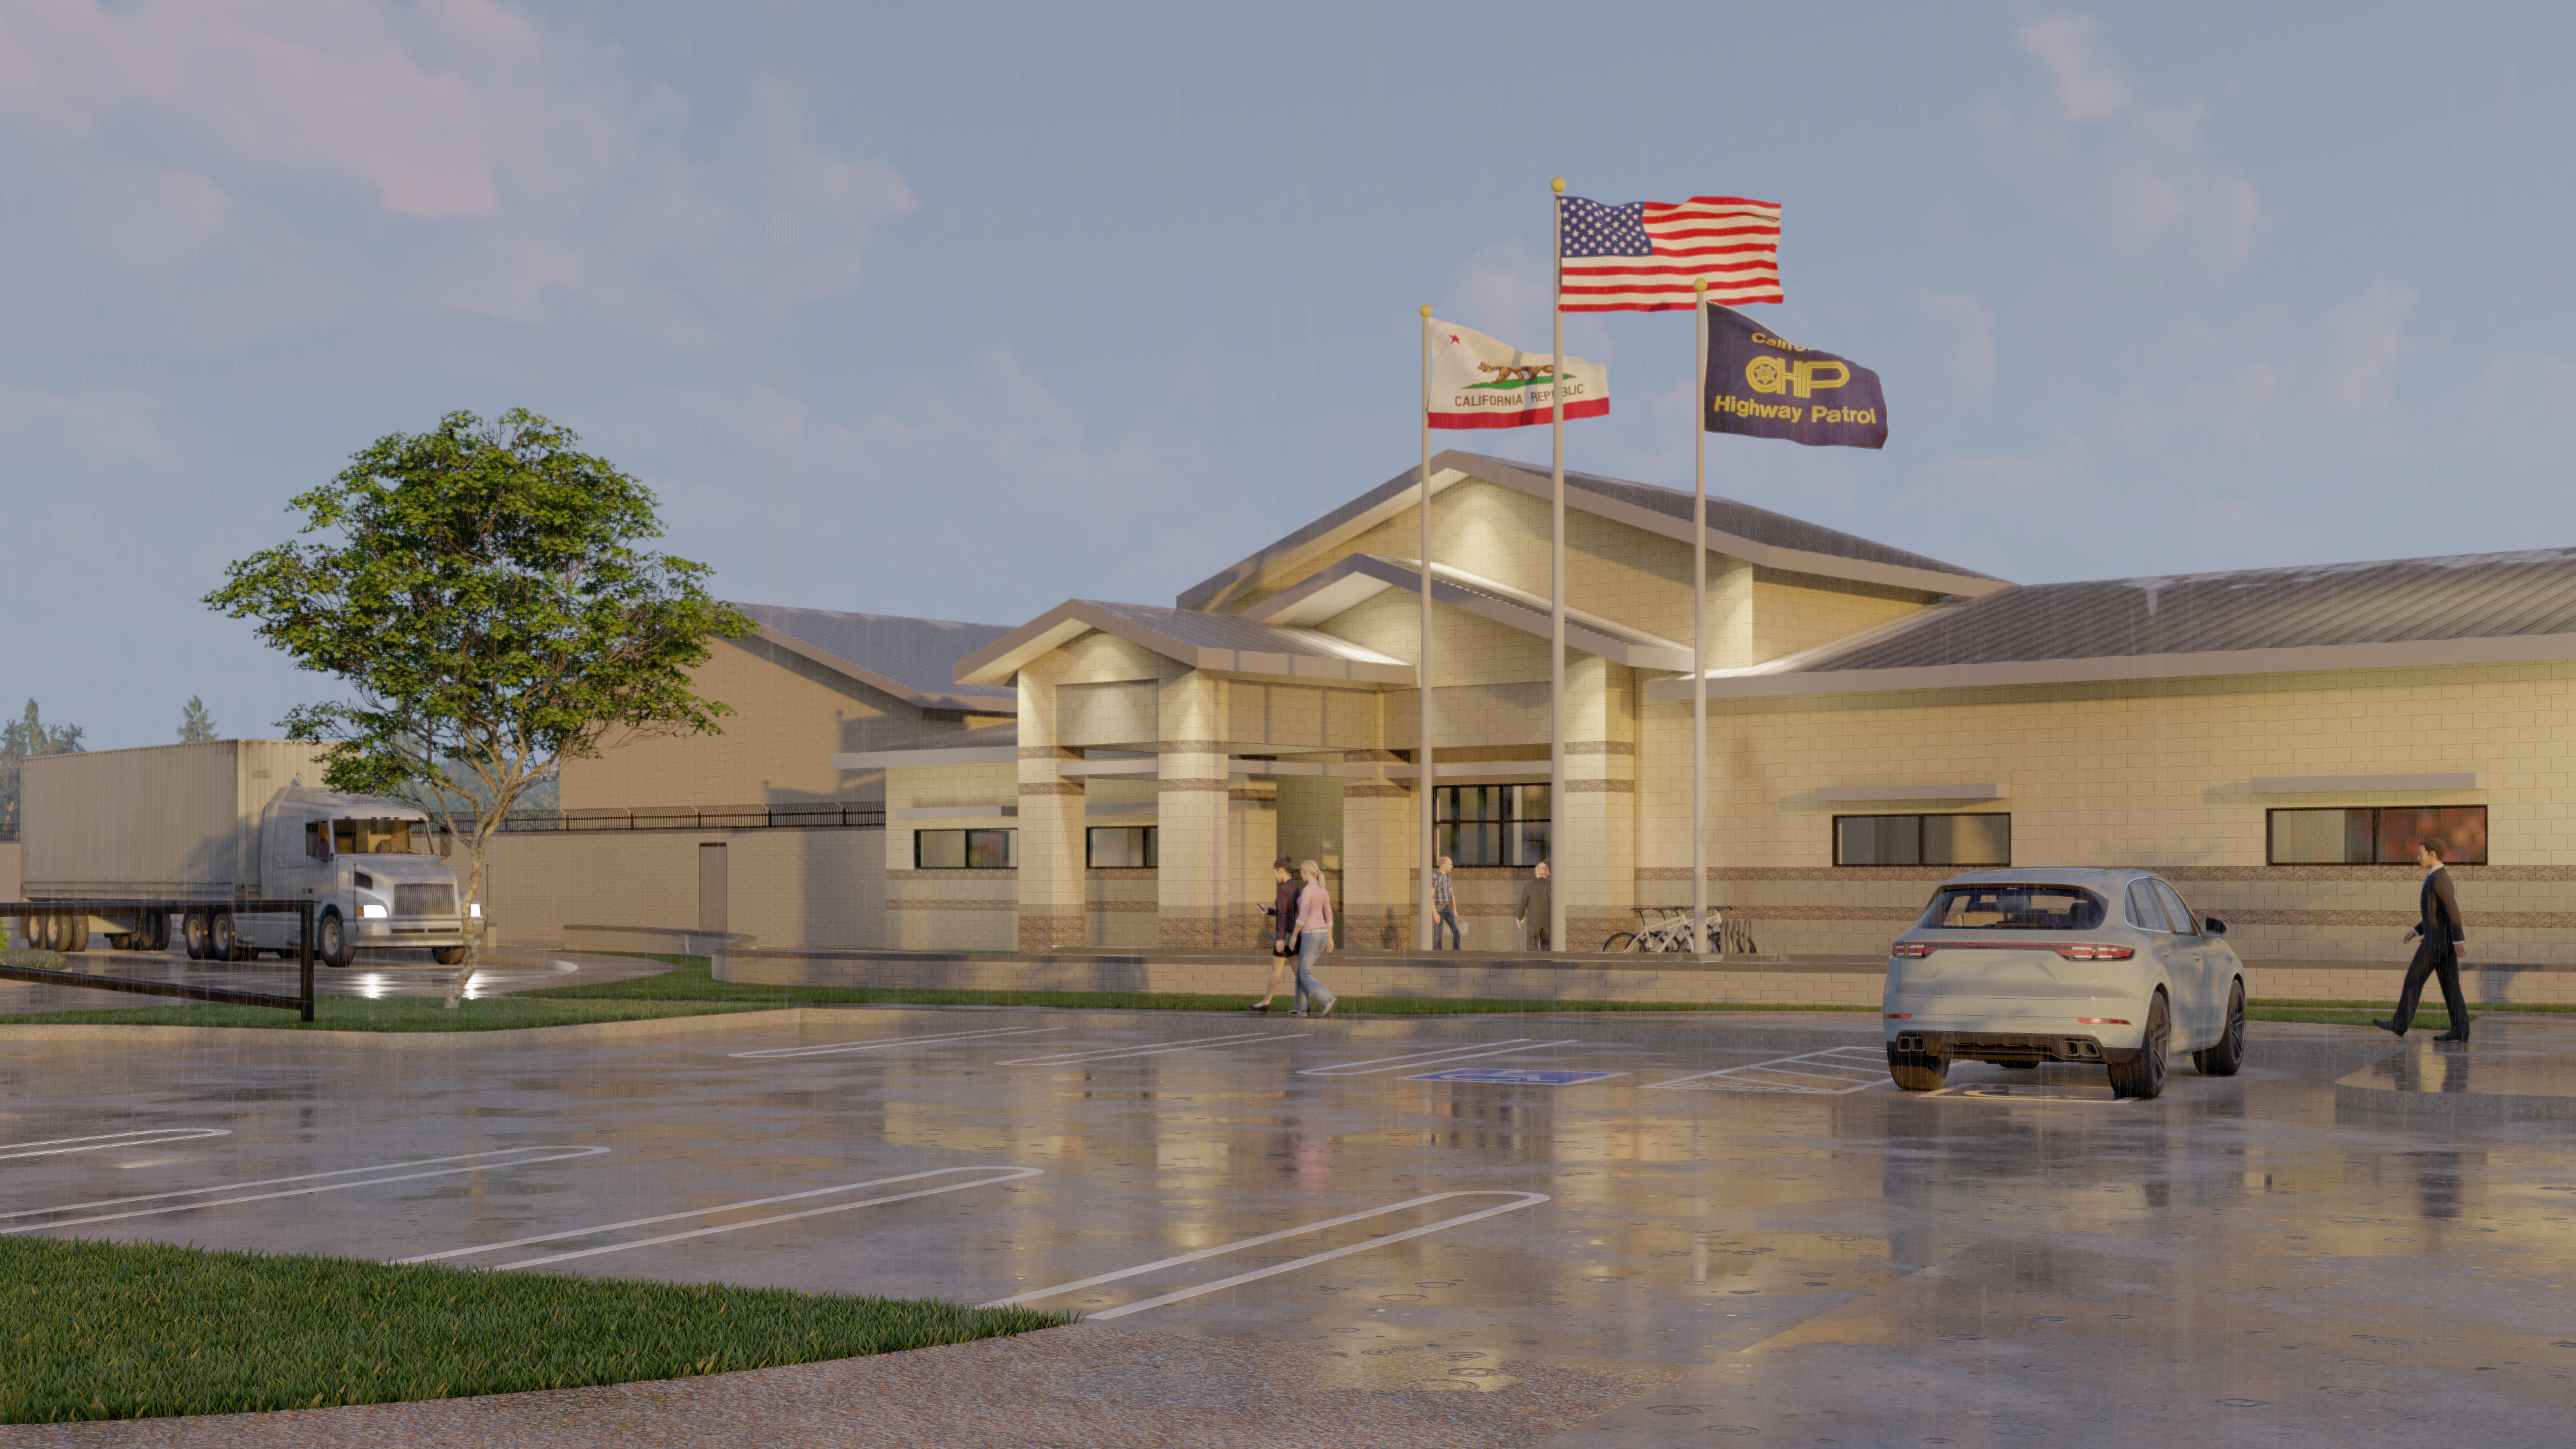 Proposal for California Highway Patrol Replacement Facility. Courtesy: Christine Smith.